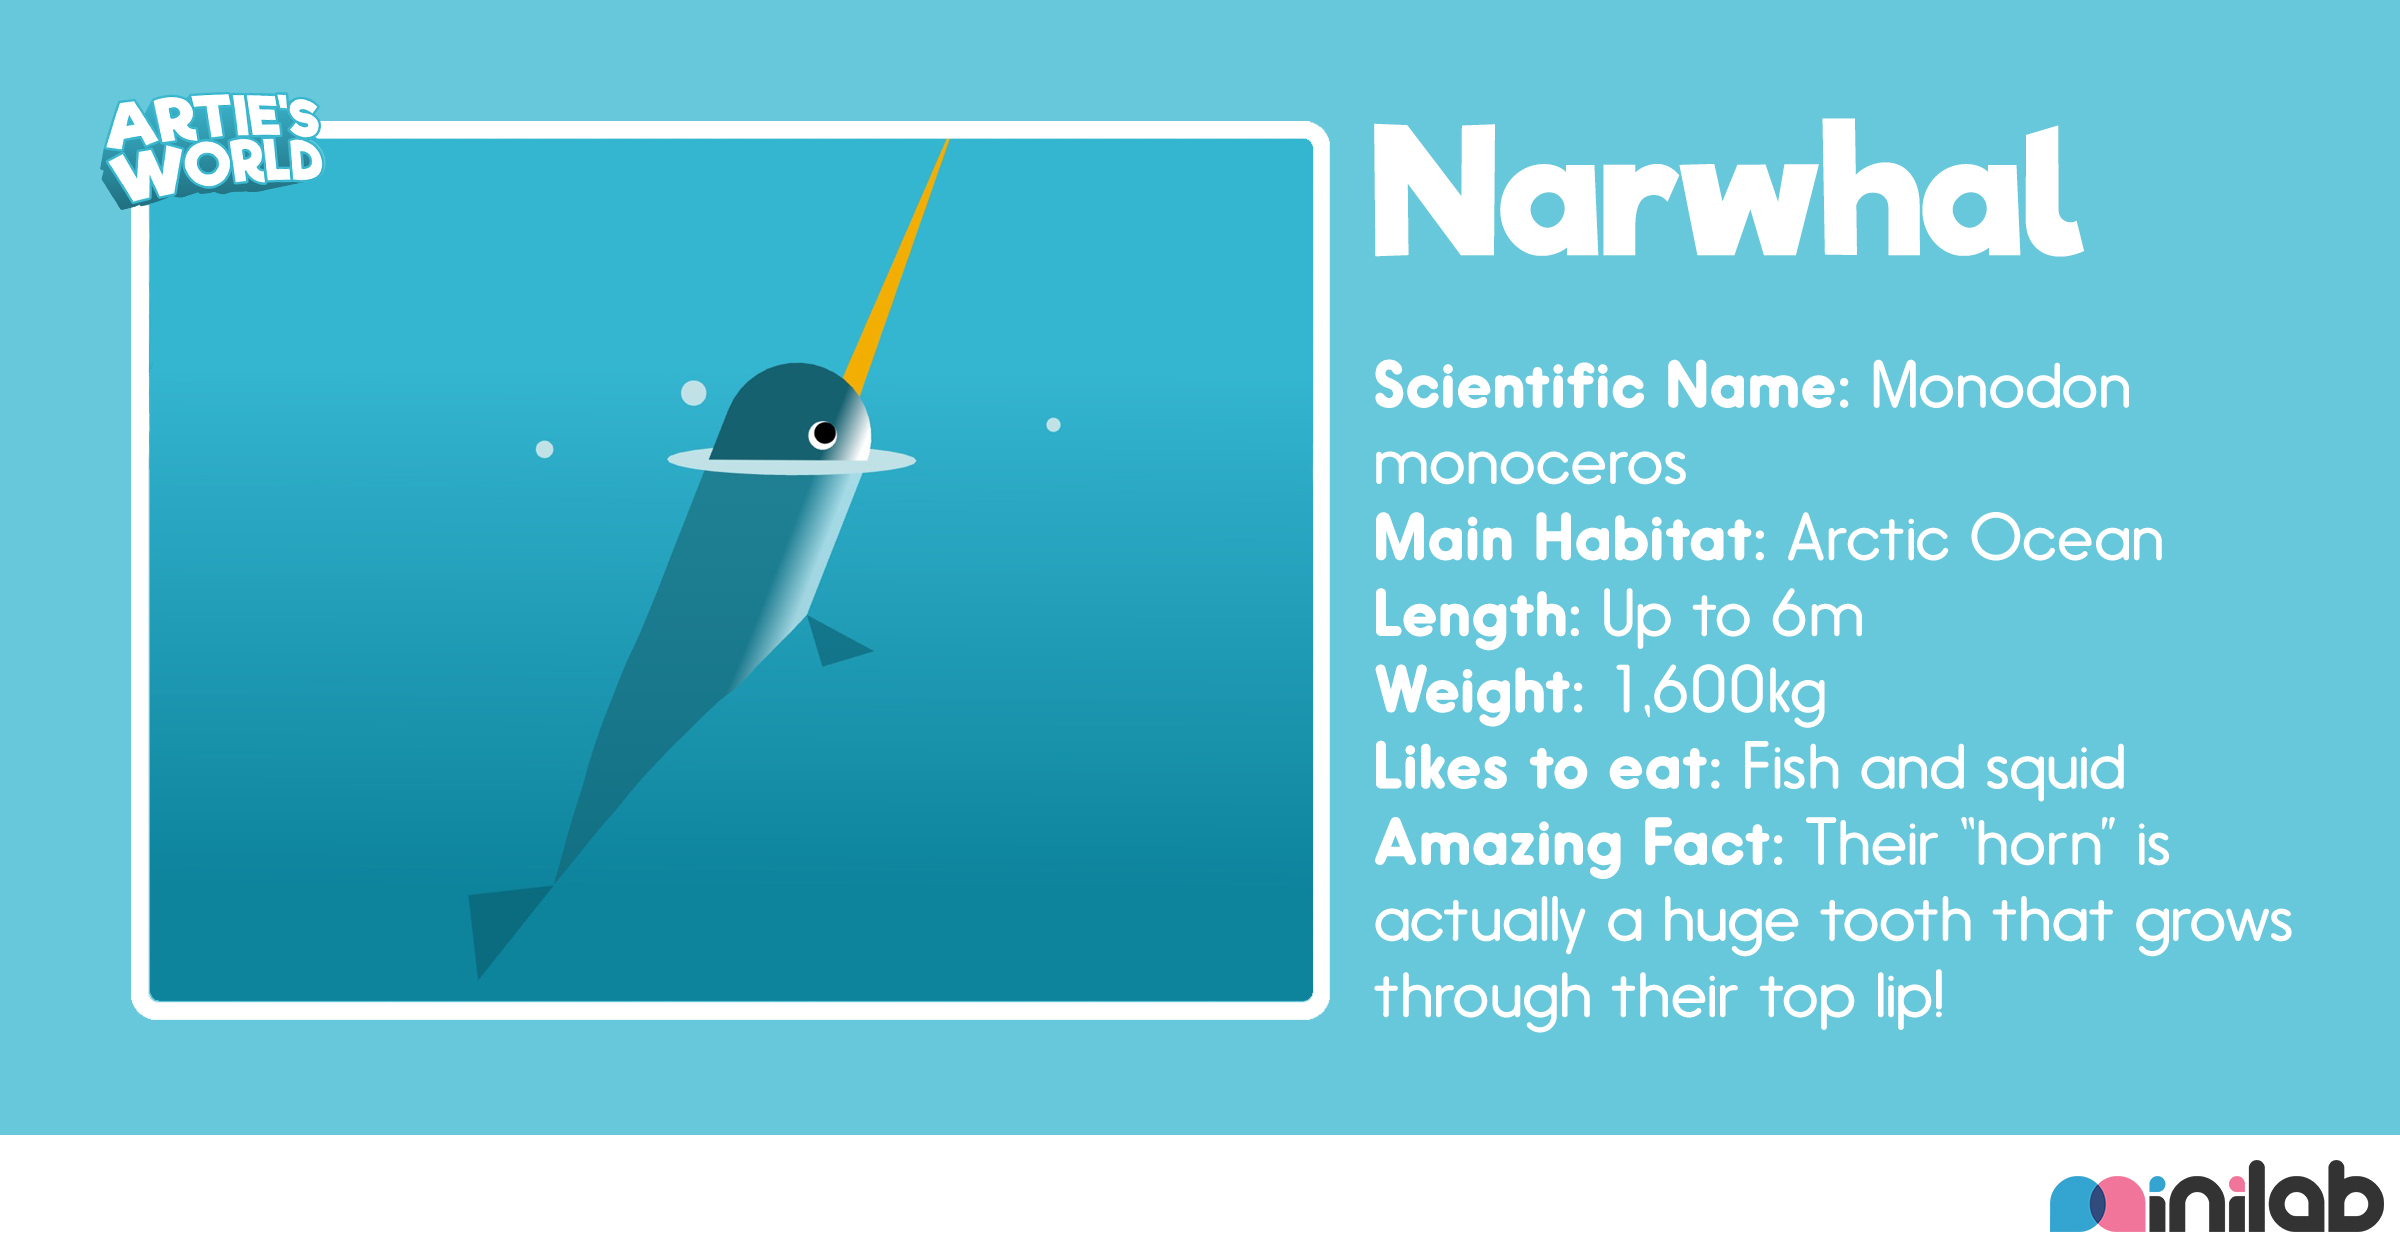 animal-bio-narwhal